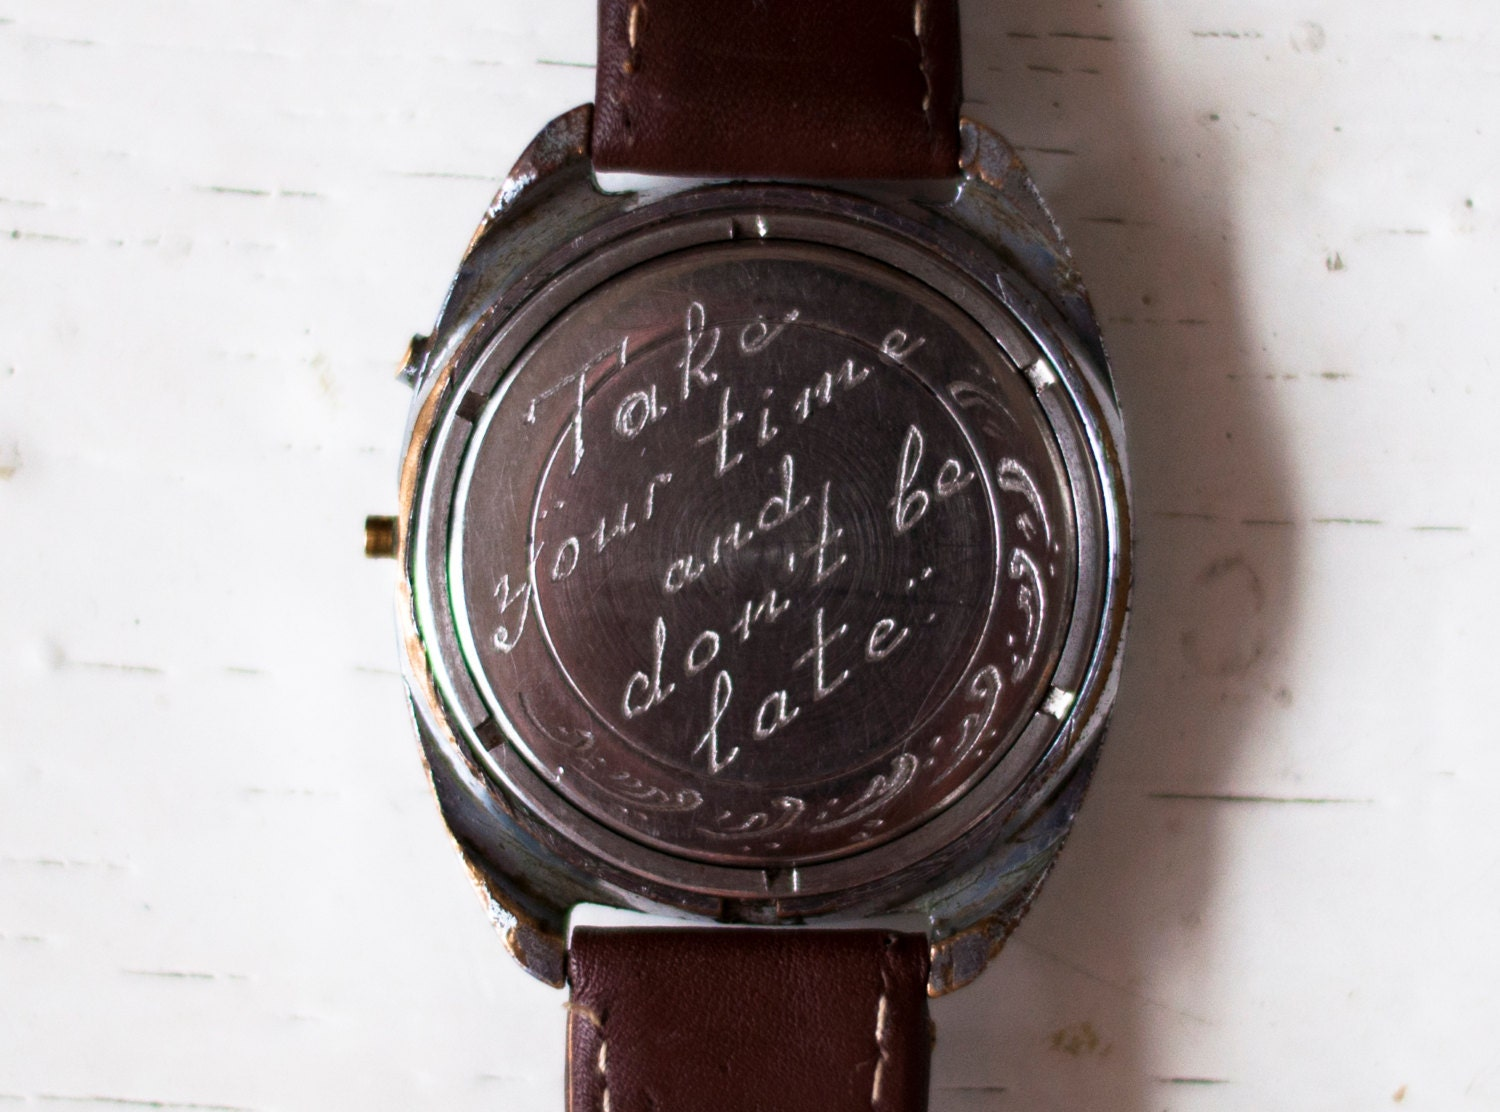 engraving on watch engraved mens watch back case of any On watches engraved